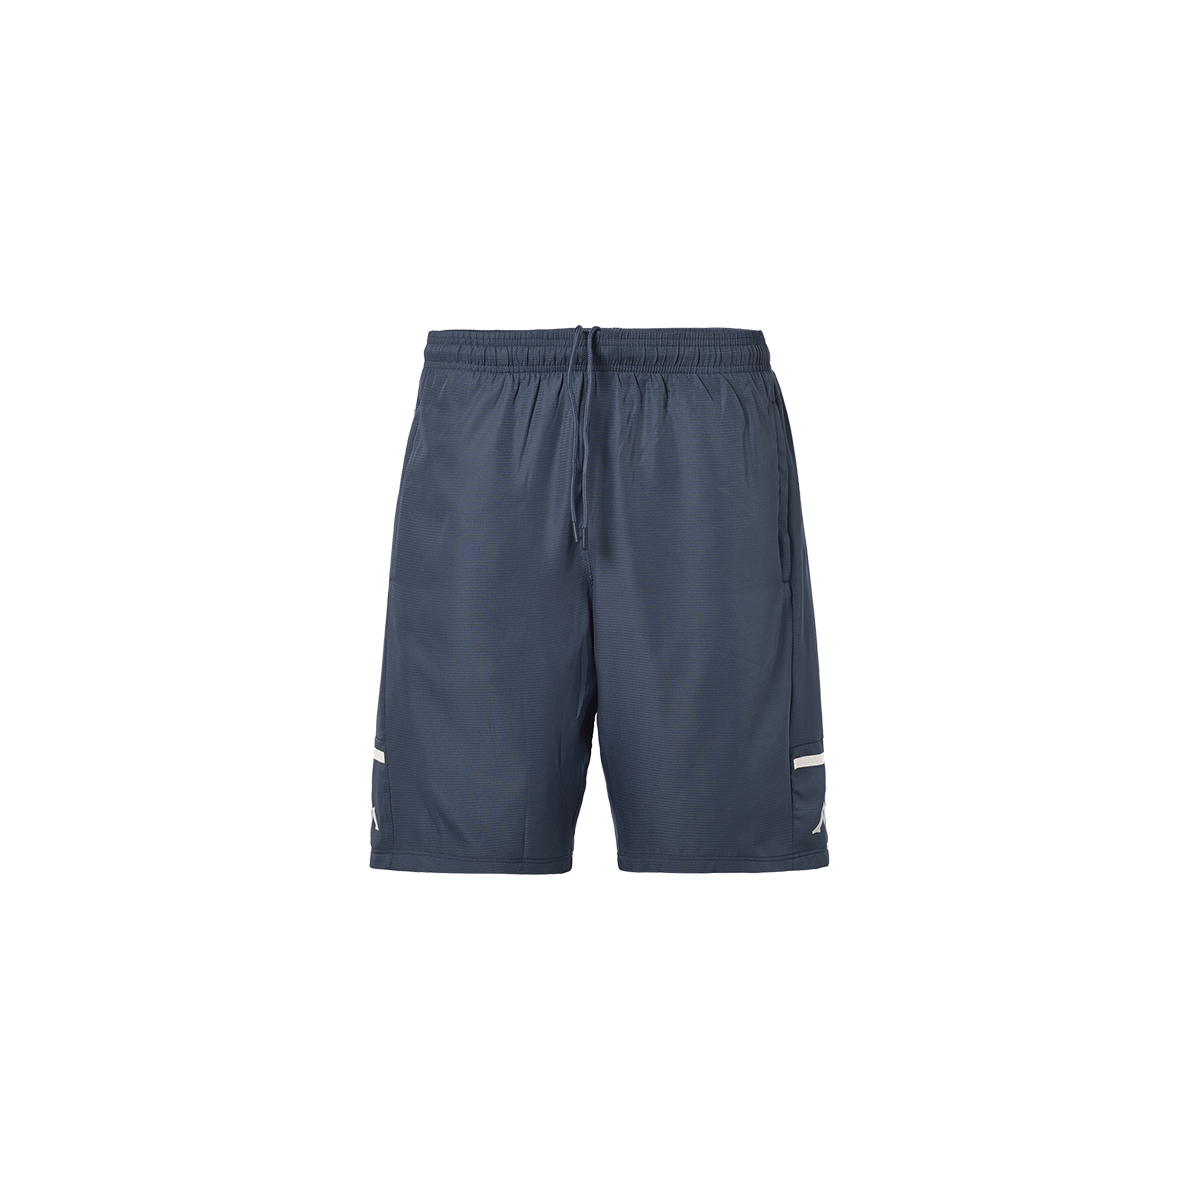 Kappa Alberg Pro 4 Training Long Short - Grey/White